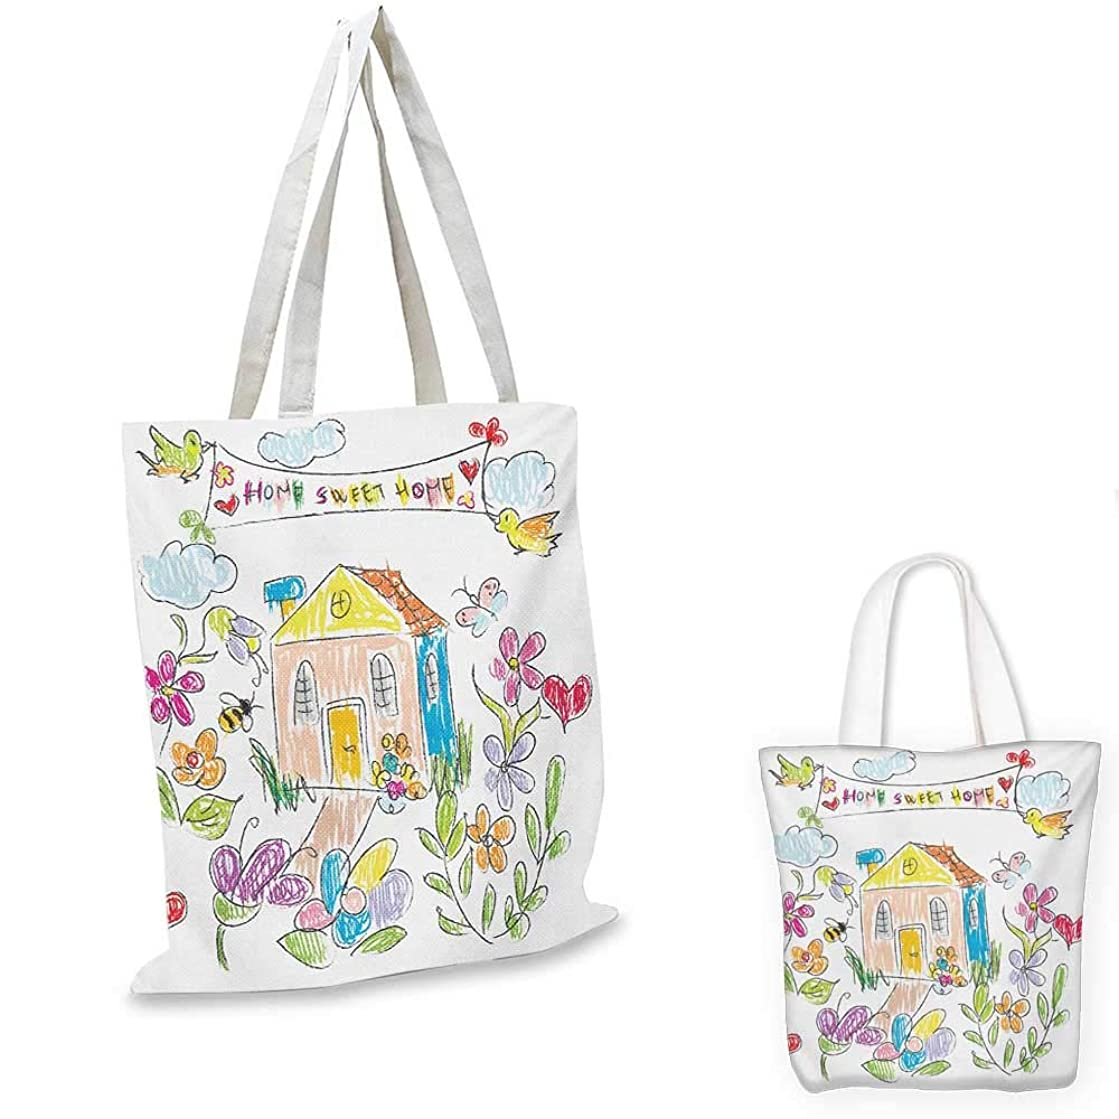 Home Sweet Home ultralight shopping bag Childish Doodle Artwork with Colorful Chalk Style Painting Flowers Birds pocketable shopping bag Multicolor. 13